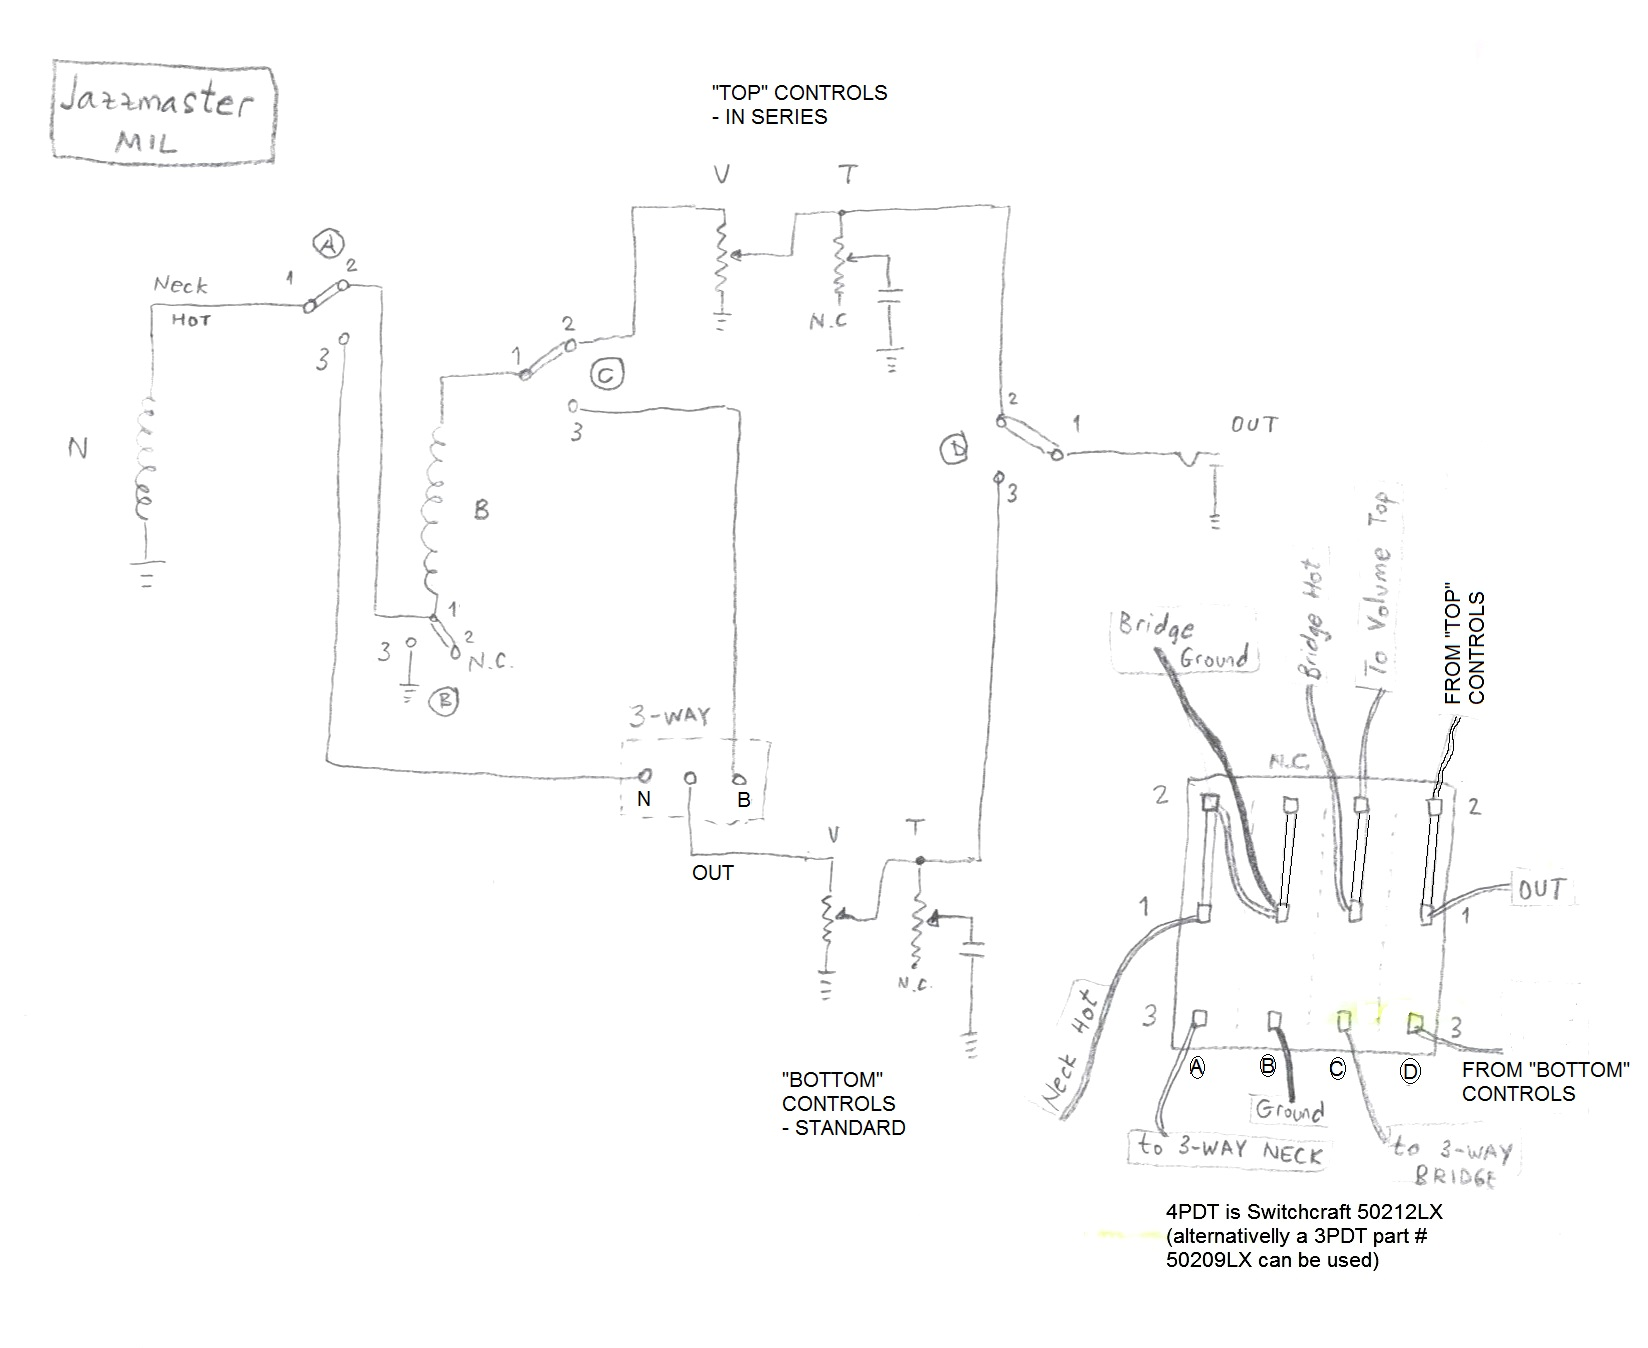 Series Tele Wiring Diagram Phase